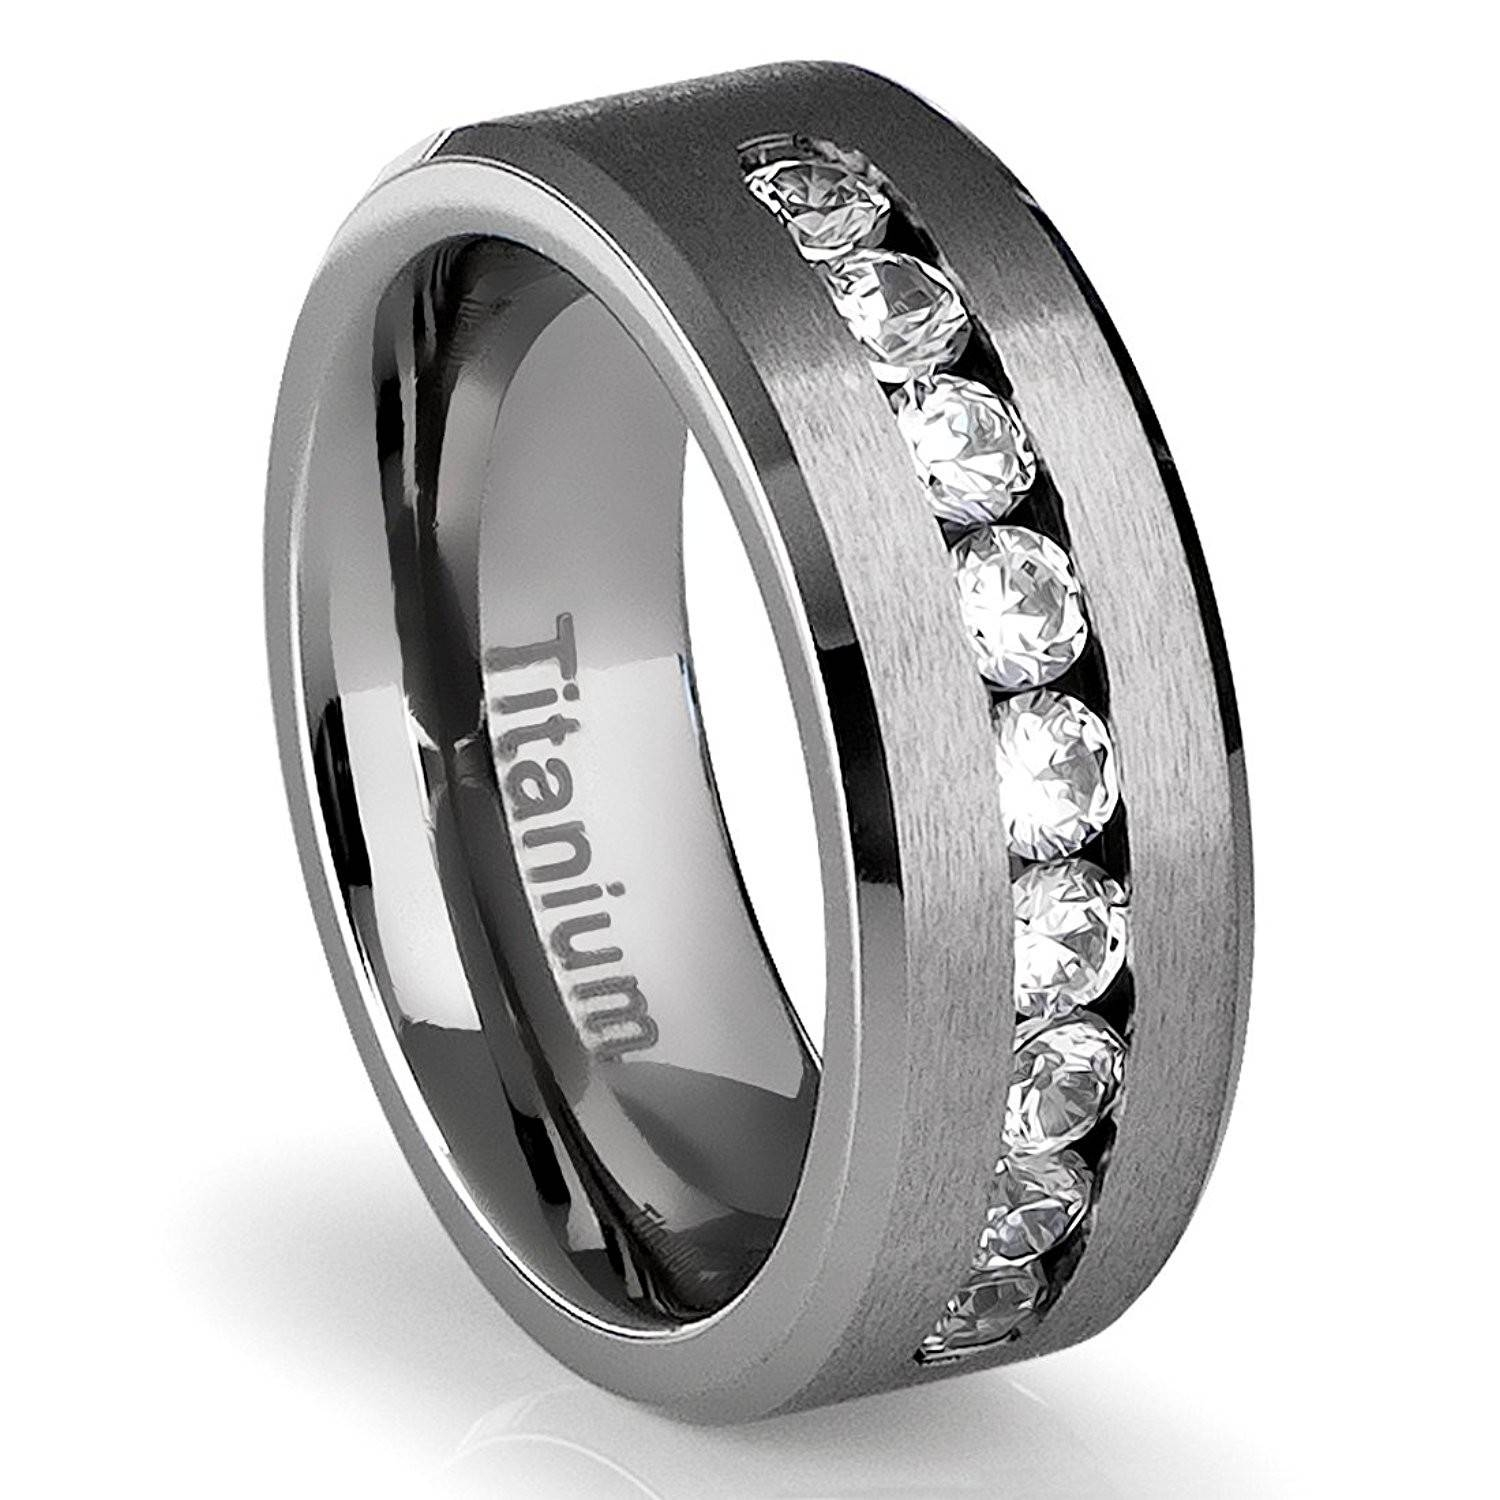 Photo Gallery of Titanium Lord Of The Rings Wedding Bands Viewing 8